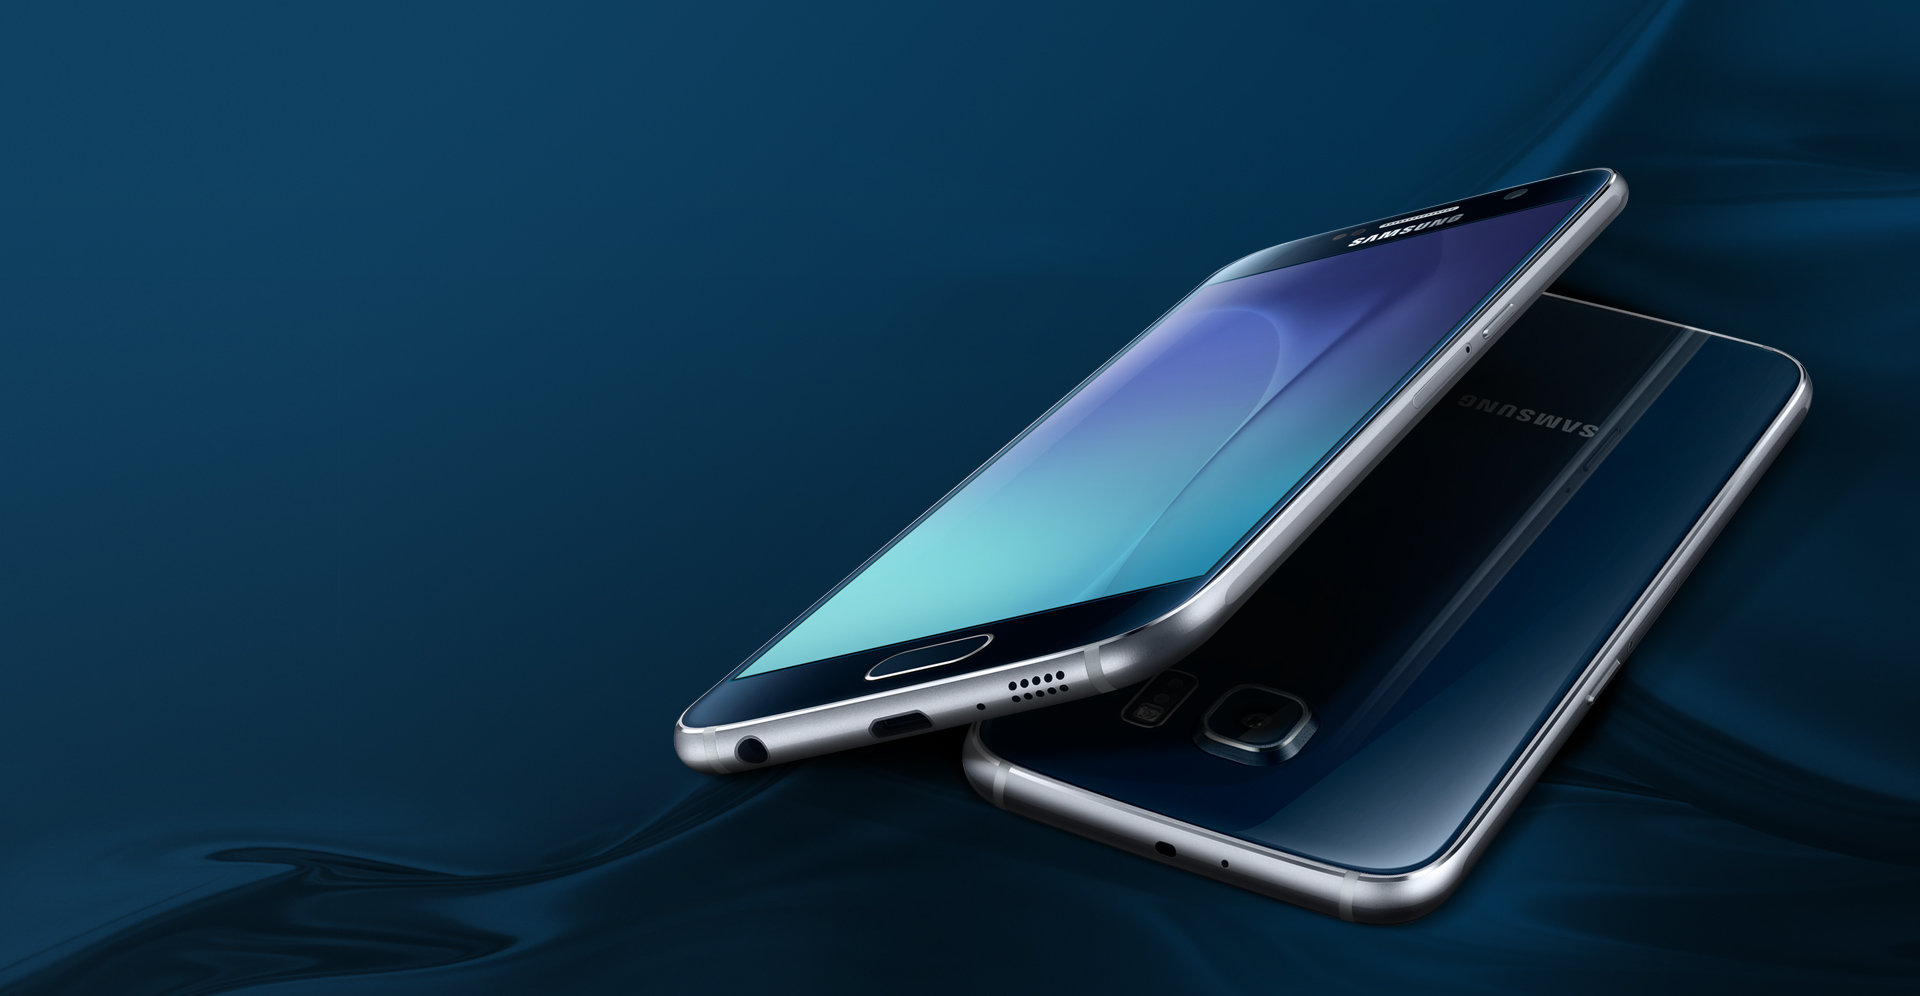 The Perfect Fusion: The Story Behind the Metal and Glass of the Galaxy S6